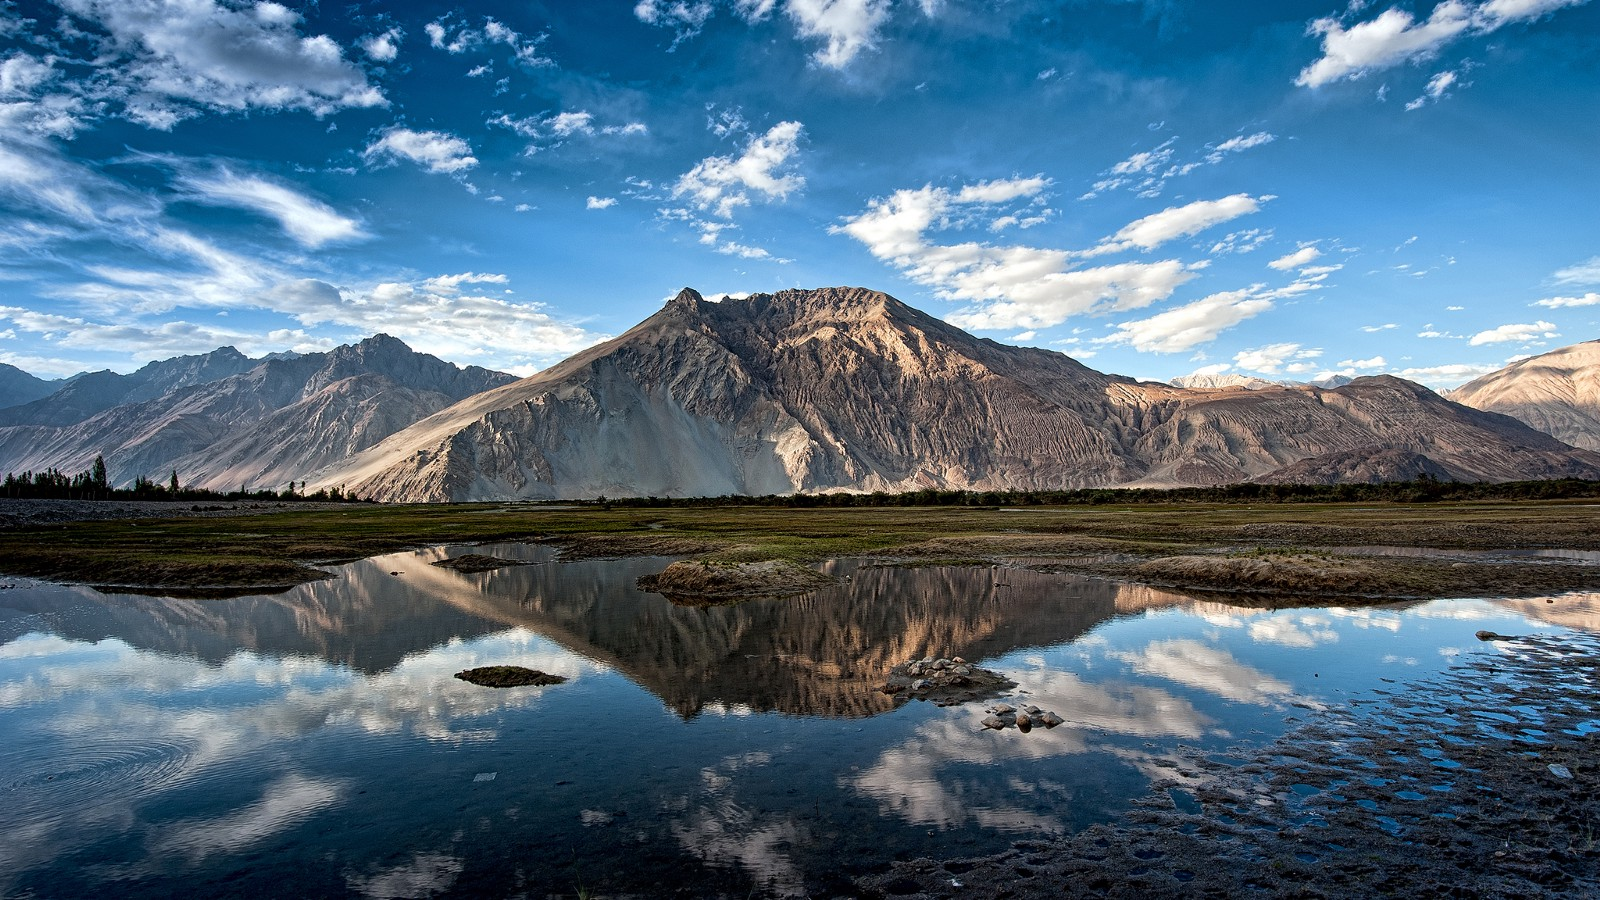 Nubra Valley, Ladakh region, India